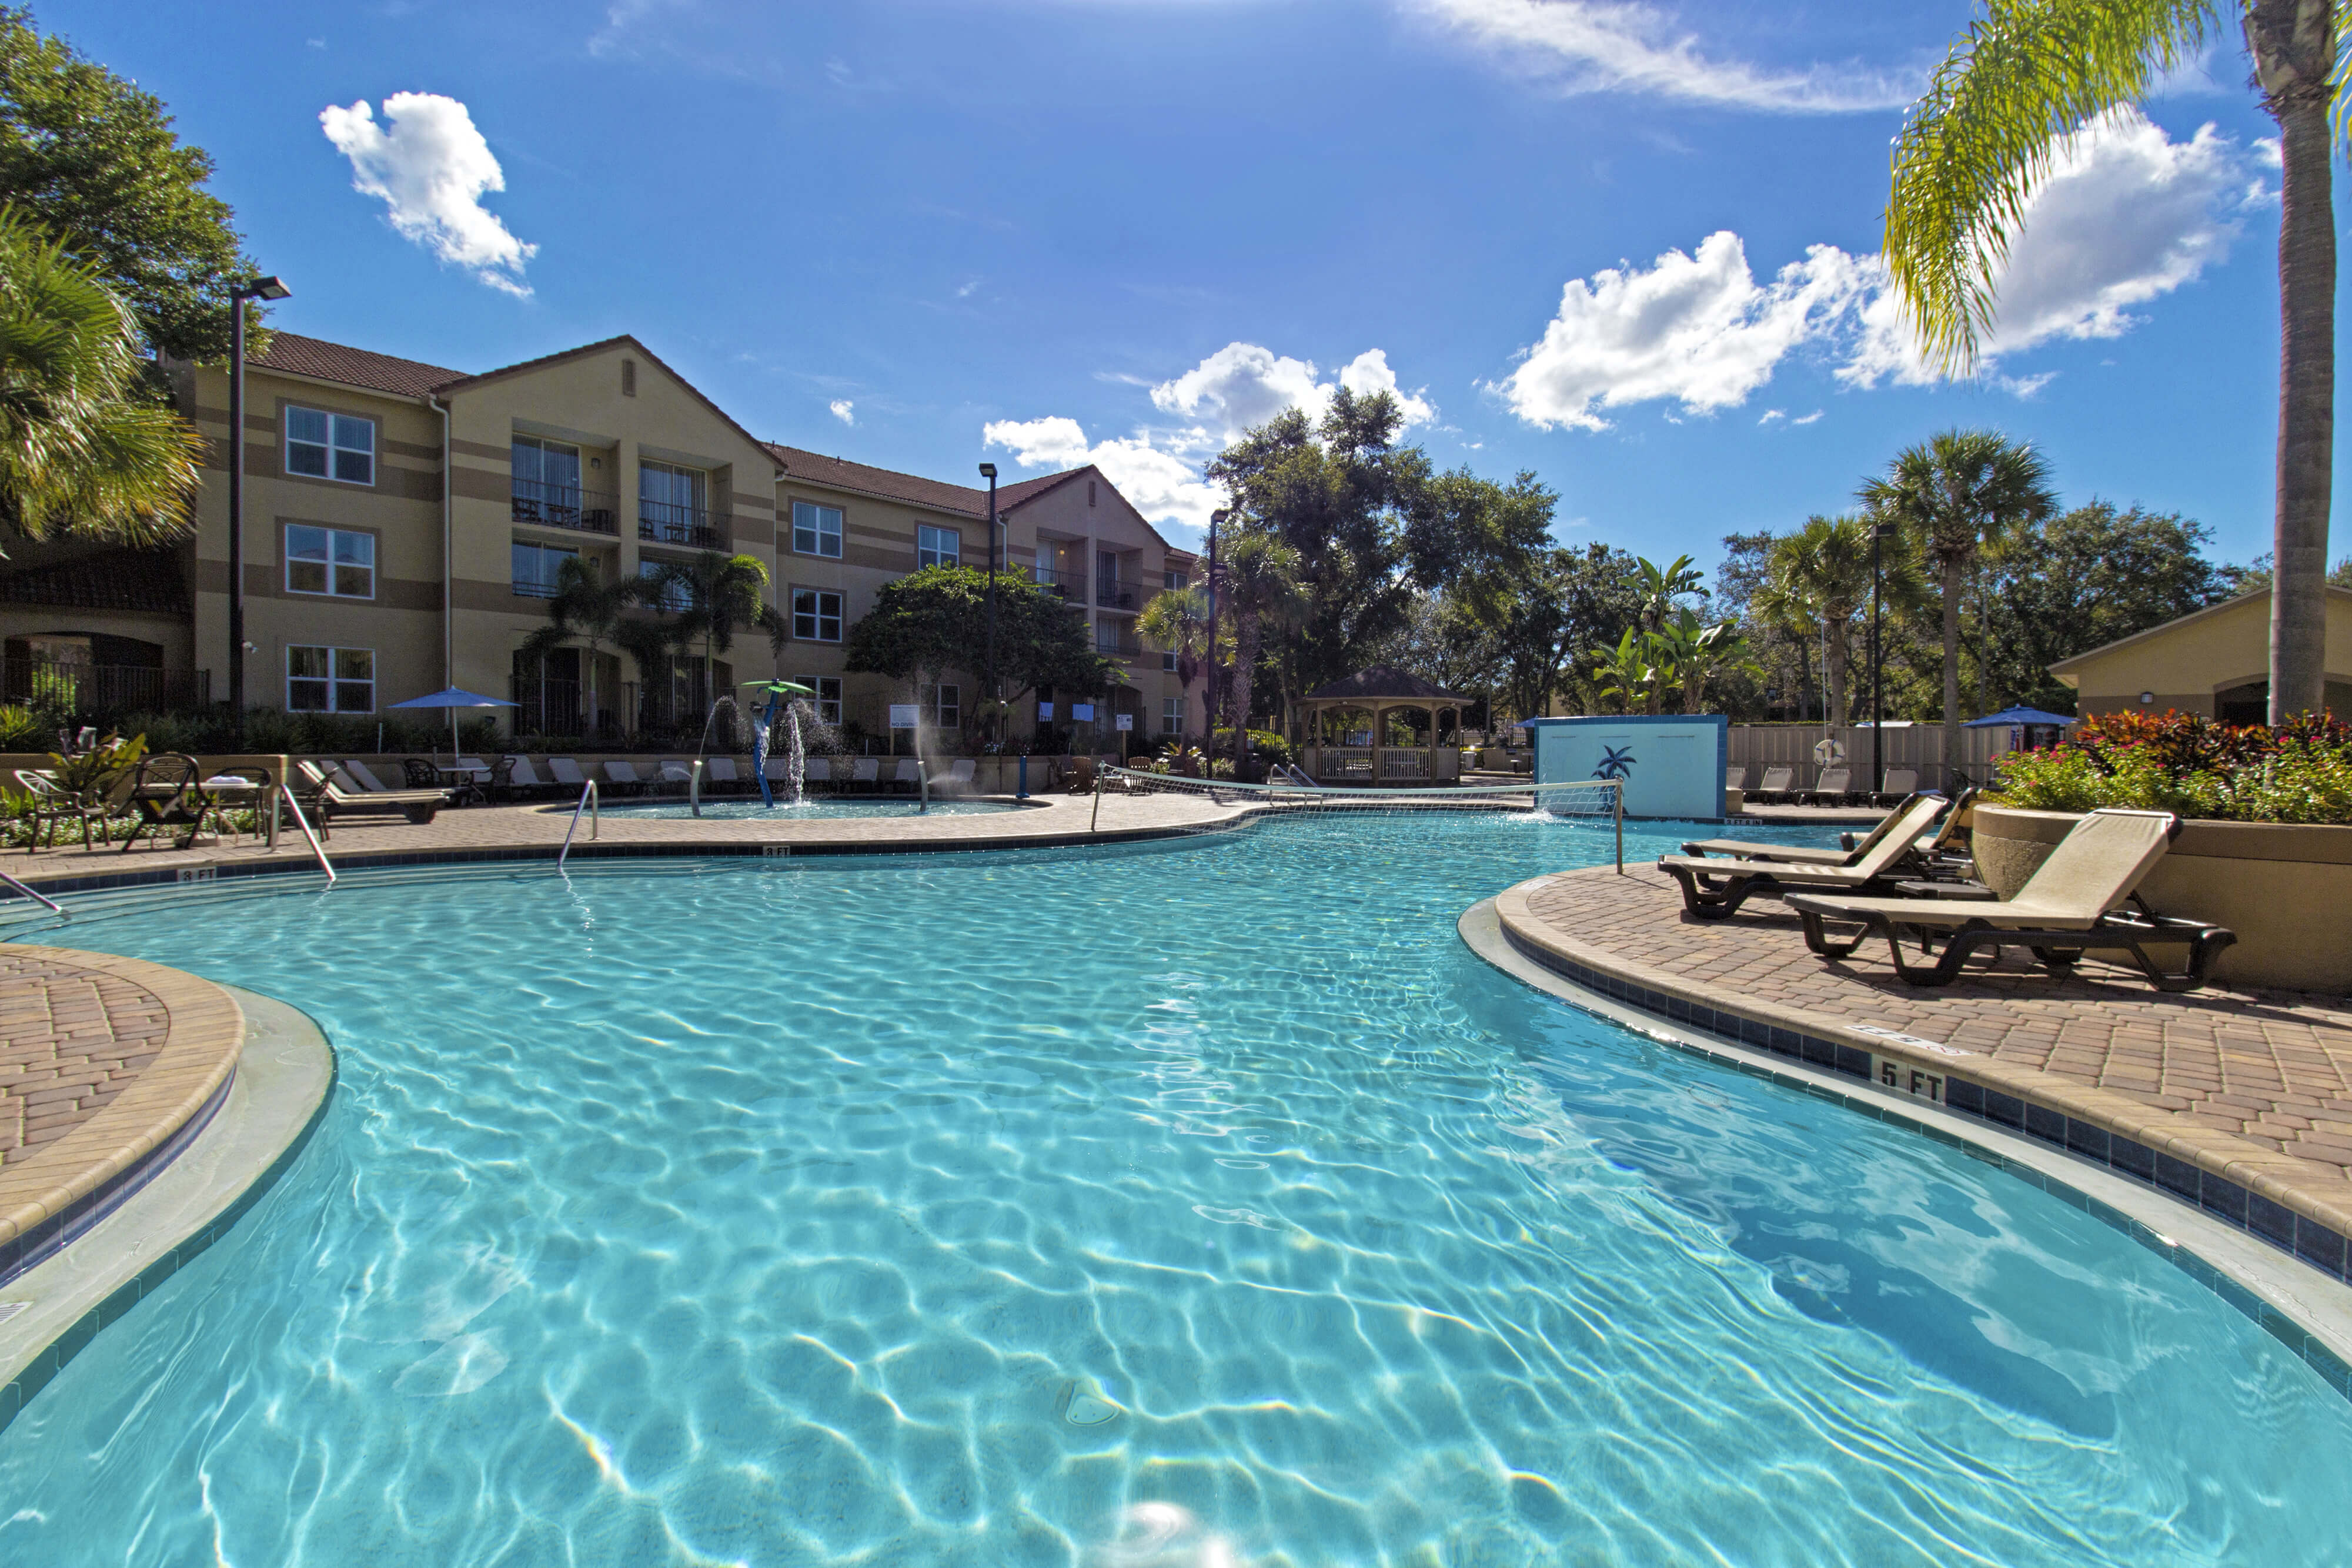 Heated outdoor pool with volleyball net | Westgate Blue Tree Resort | Westgate Resorts